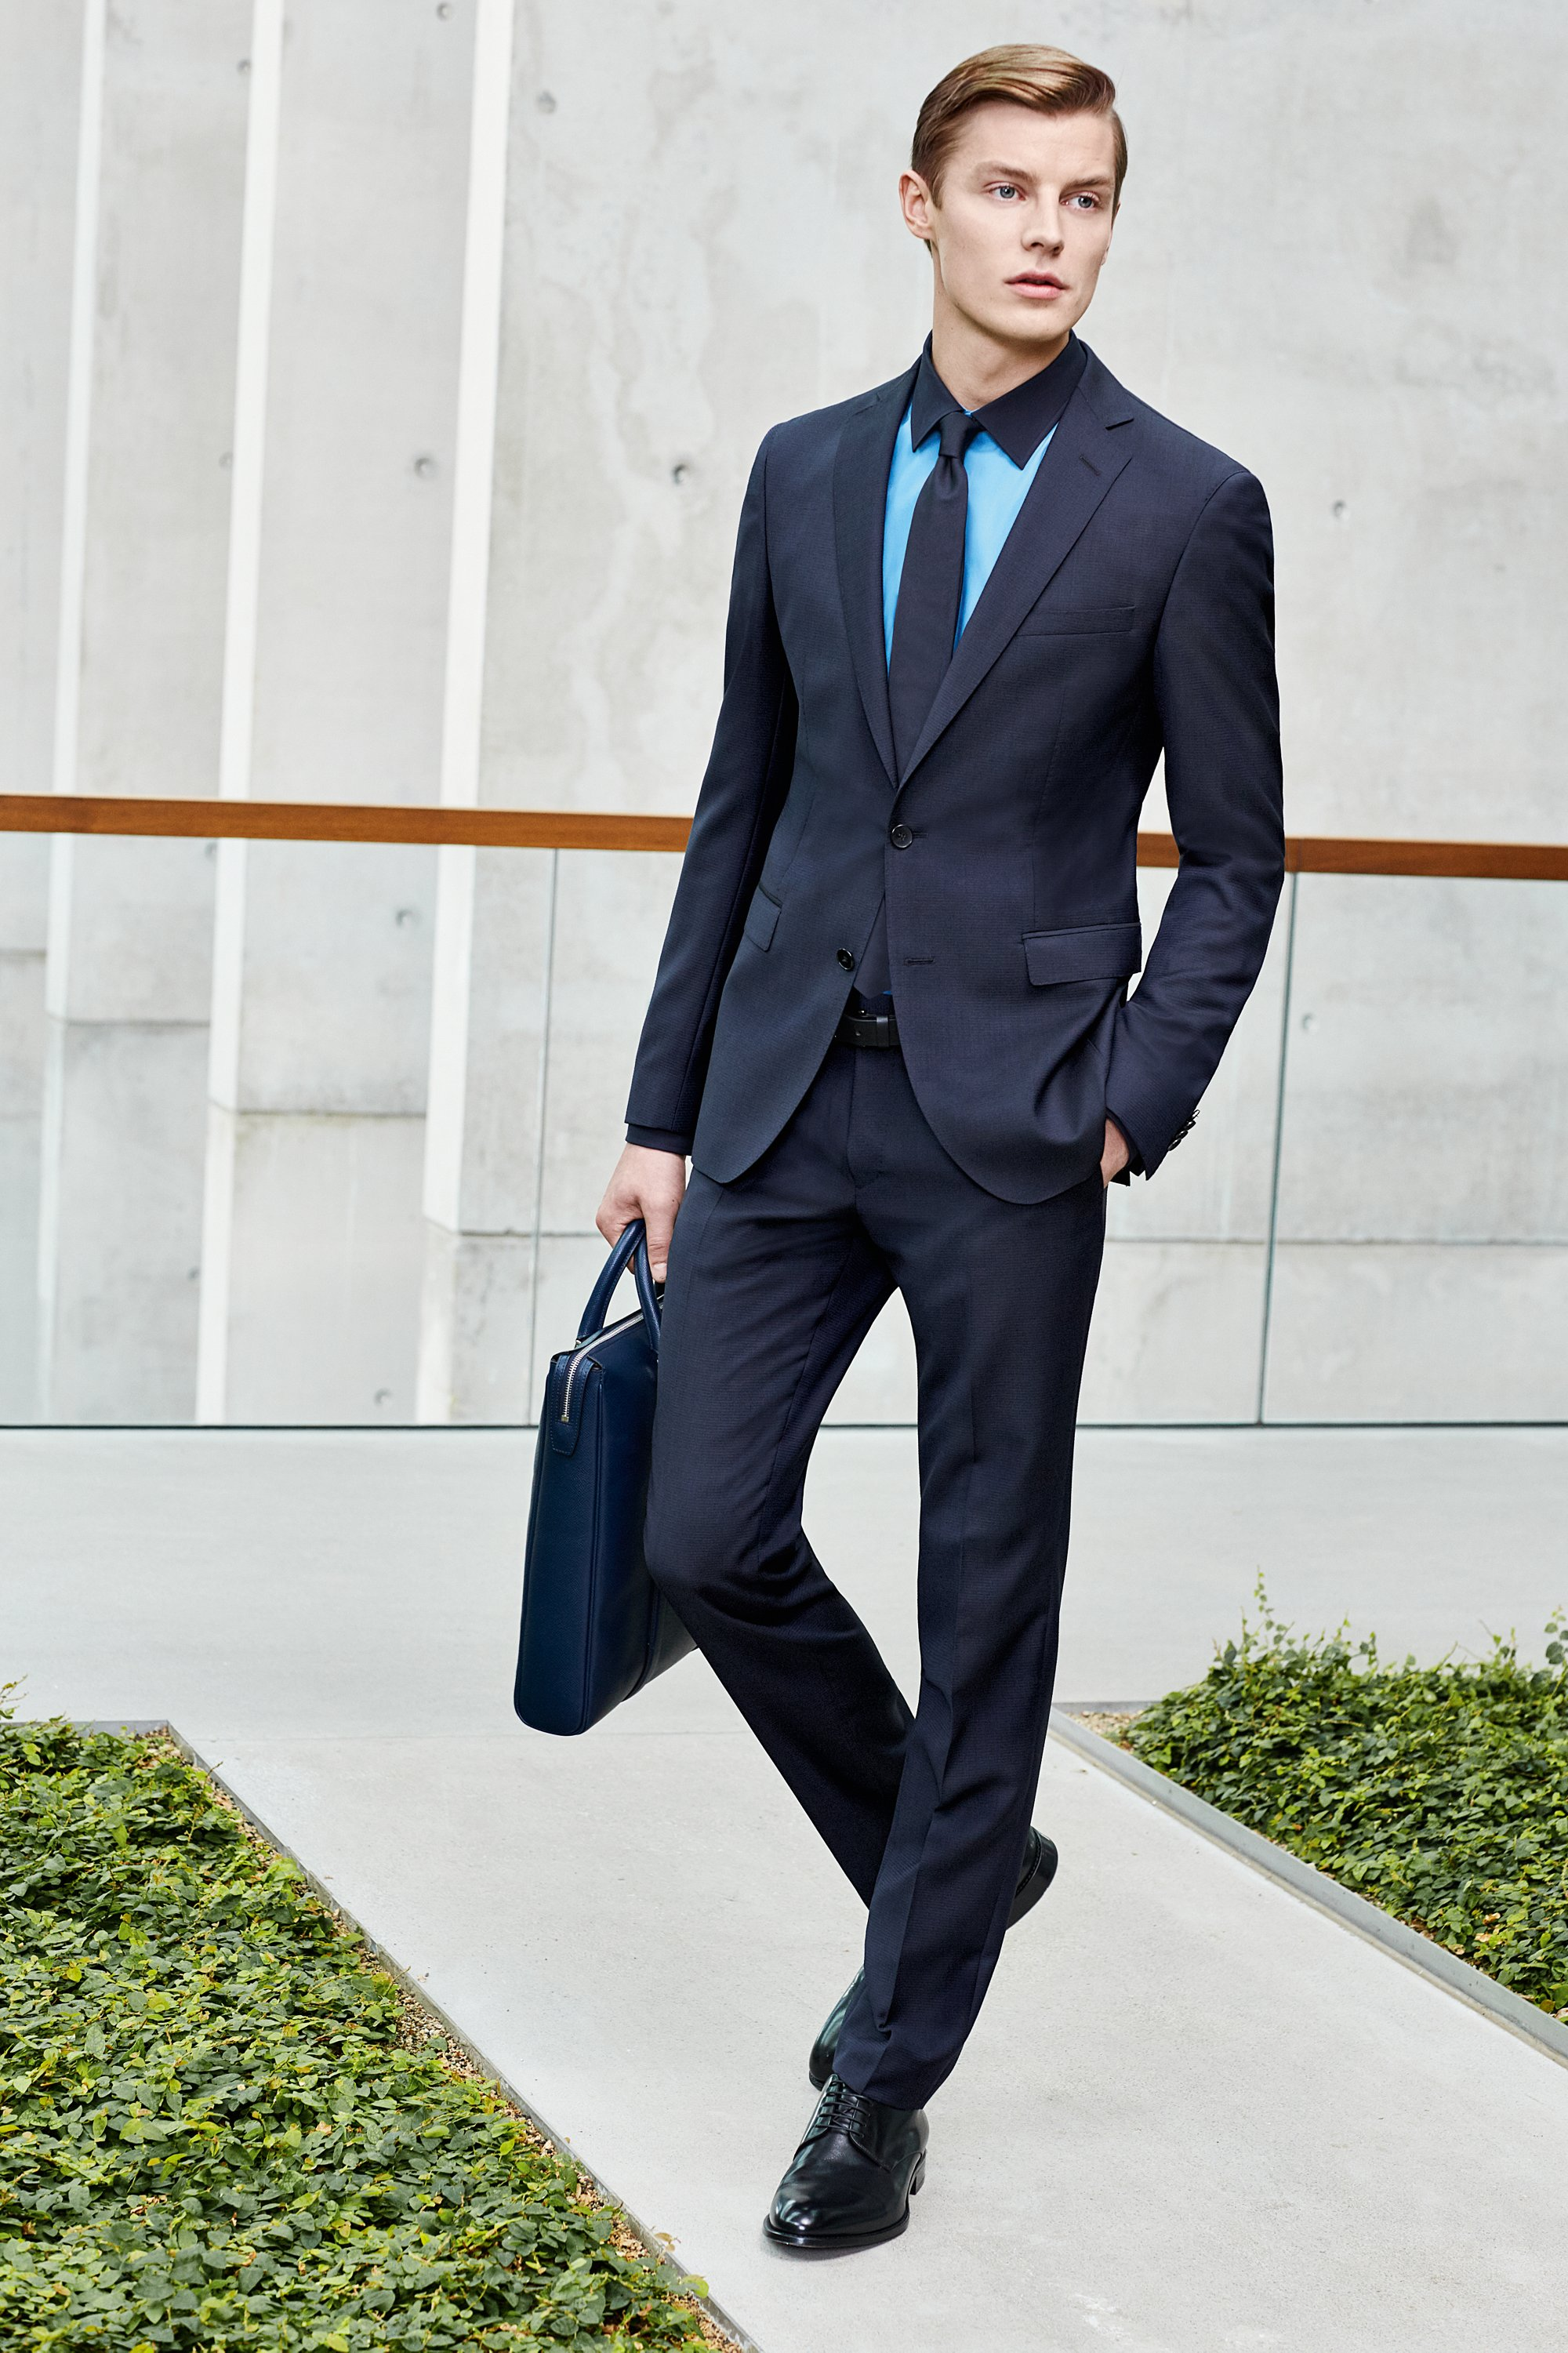 Suit, shirt, neckwear, belts and signature bag by BOSS